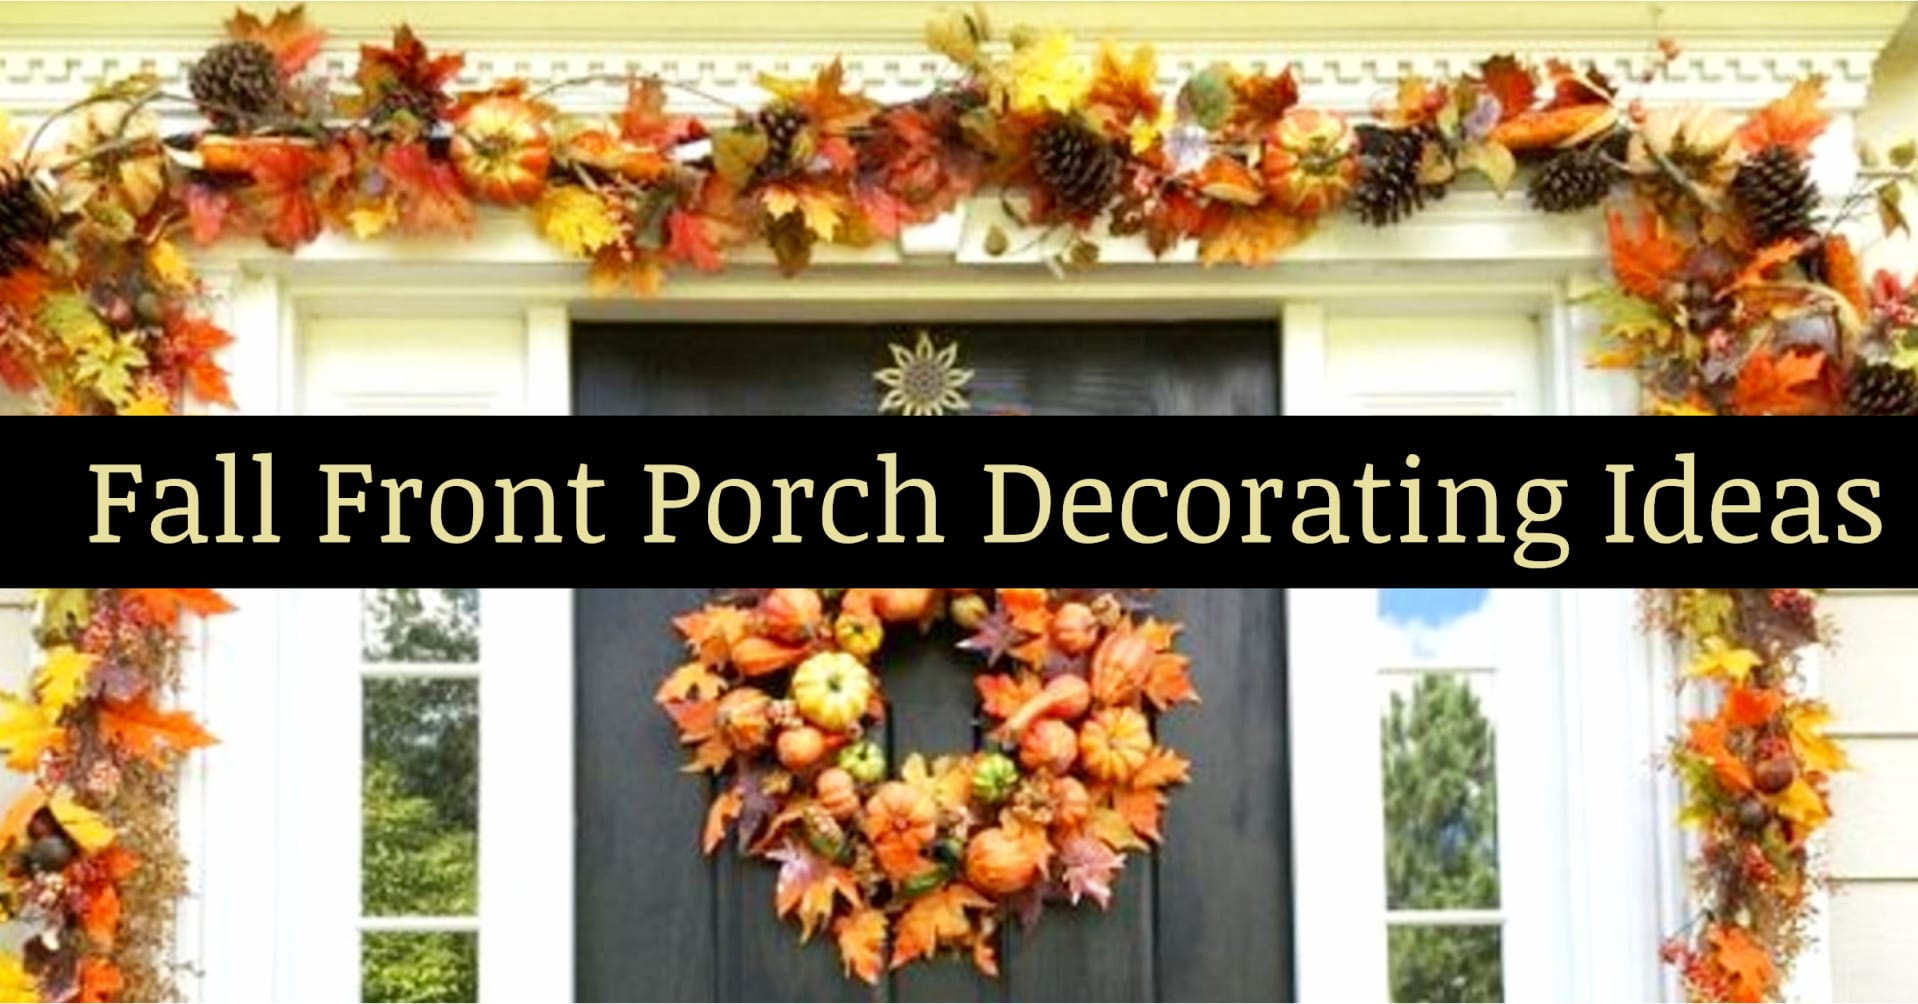 Fall decor ideas for your front porch - decorating for fall on a budget